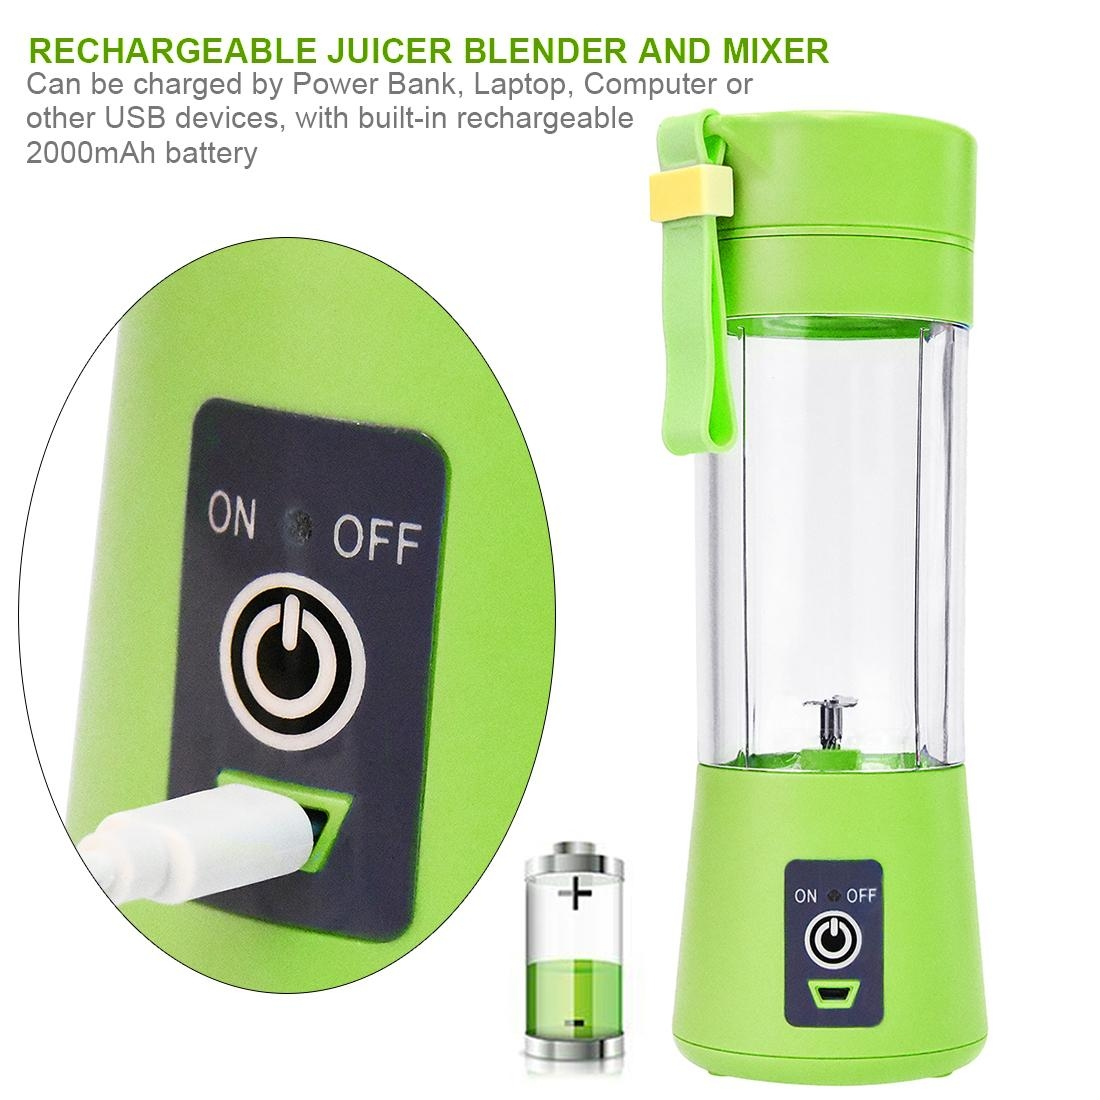 Kilimall Juicer Cup Portable Blender Fruit Mix Machine Rechargeable Battery Please Use A Neutral Detergent And Do Not Chlorine Bleachpackage Content1x Cup1x User Manual1x Usb Charging Cable1x Color Box Packing